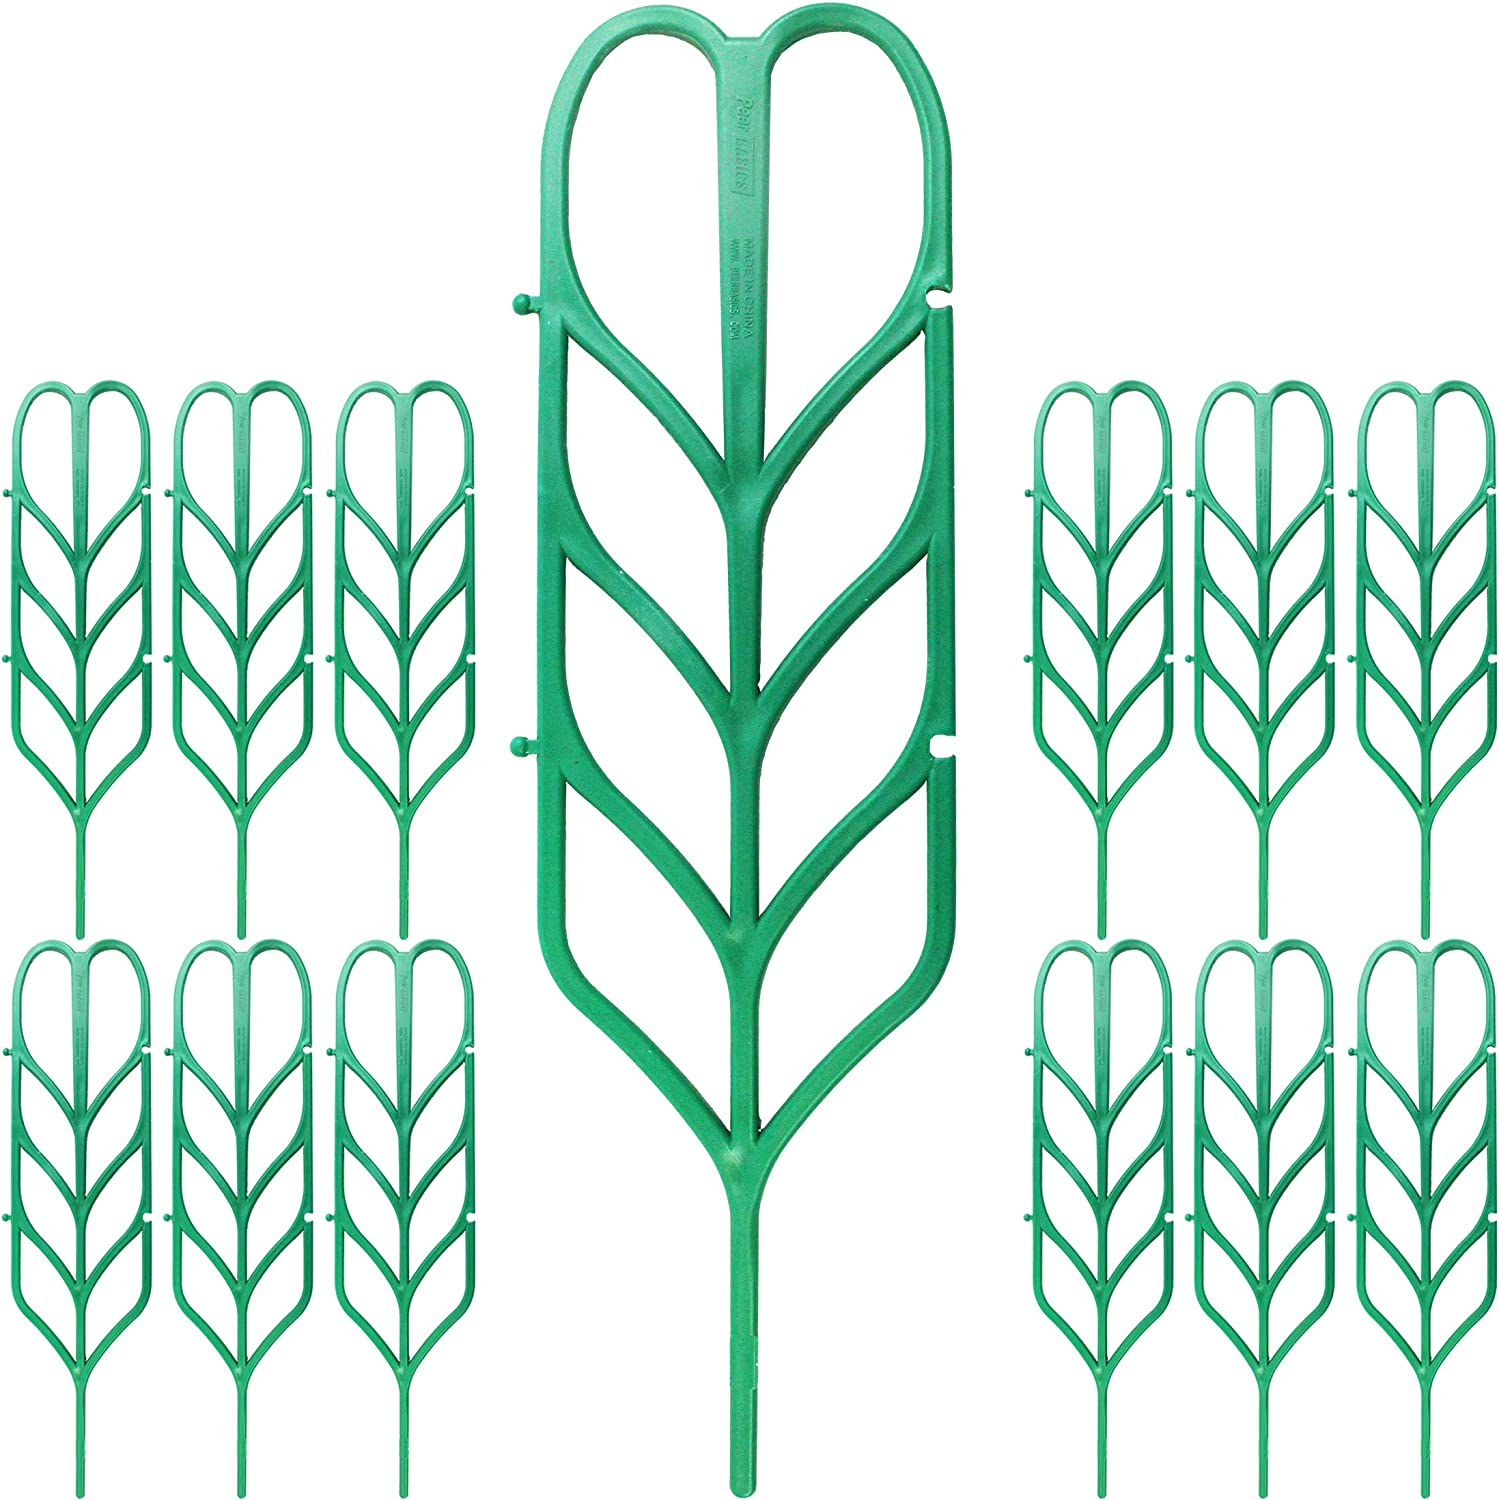 PeerBasics, Indoor Plant Trellis, 12 Pack, Climbing Garden Leaf Shape Supports, for DYI Climbing Stems Stalks & Vine Vegetable Potted Garden (12)